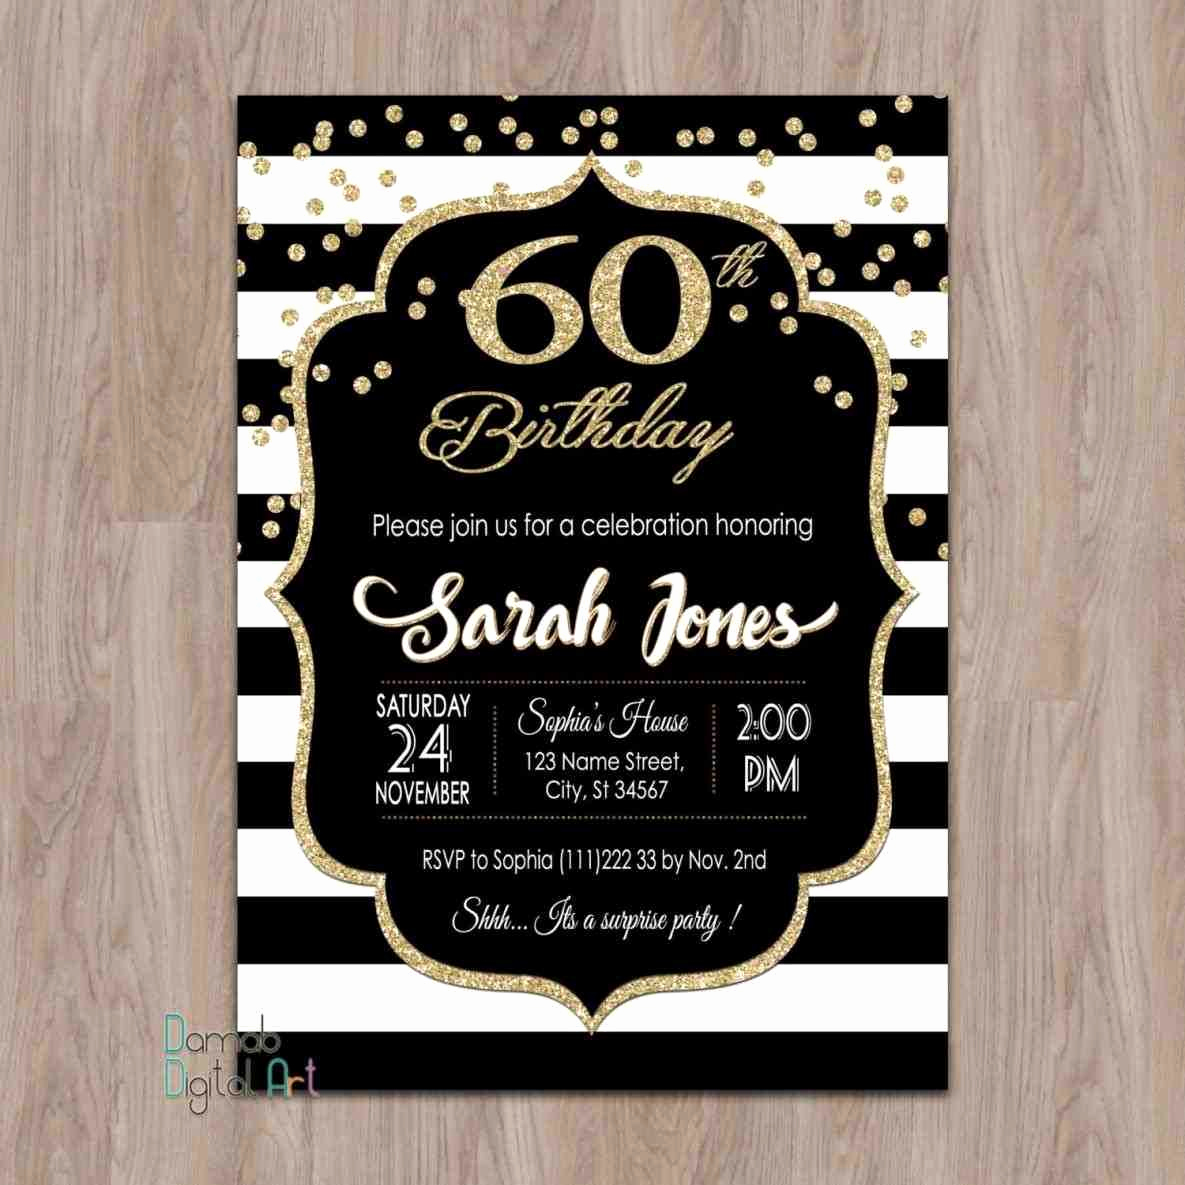 30th Birthday Invitation Ideas Luxury Full Size Of Design 30th Birthday Invitation Template